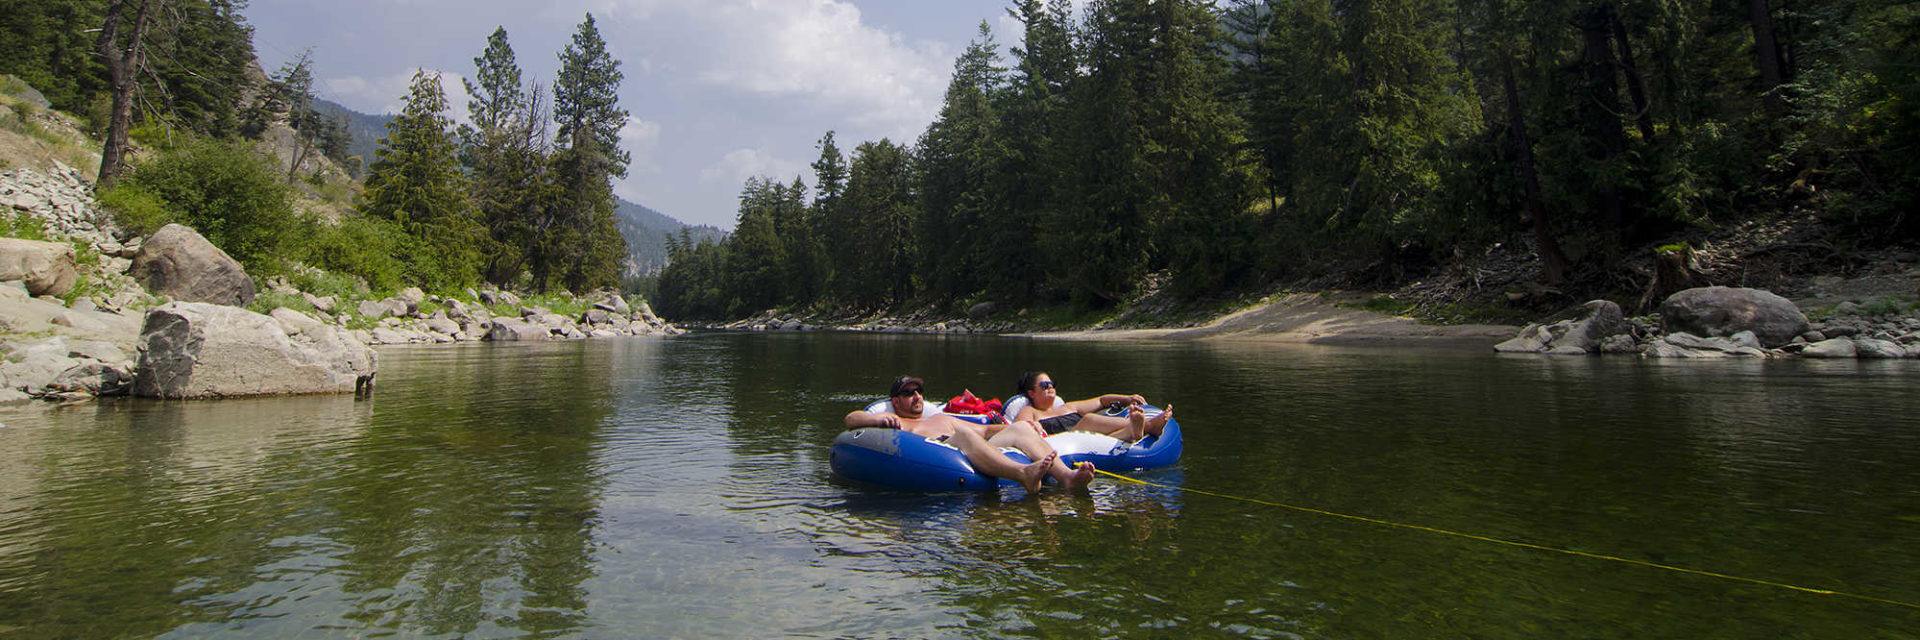 Floating the River - Similkameen Valley